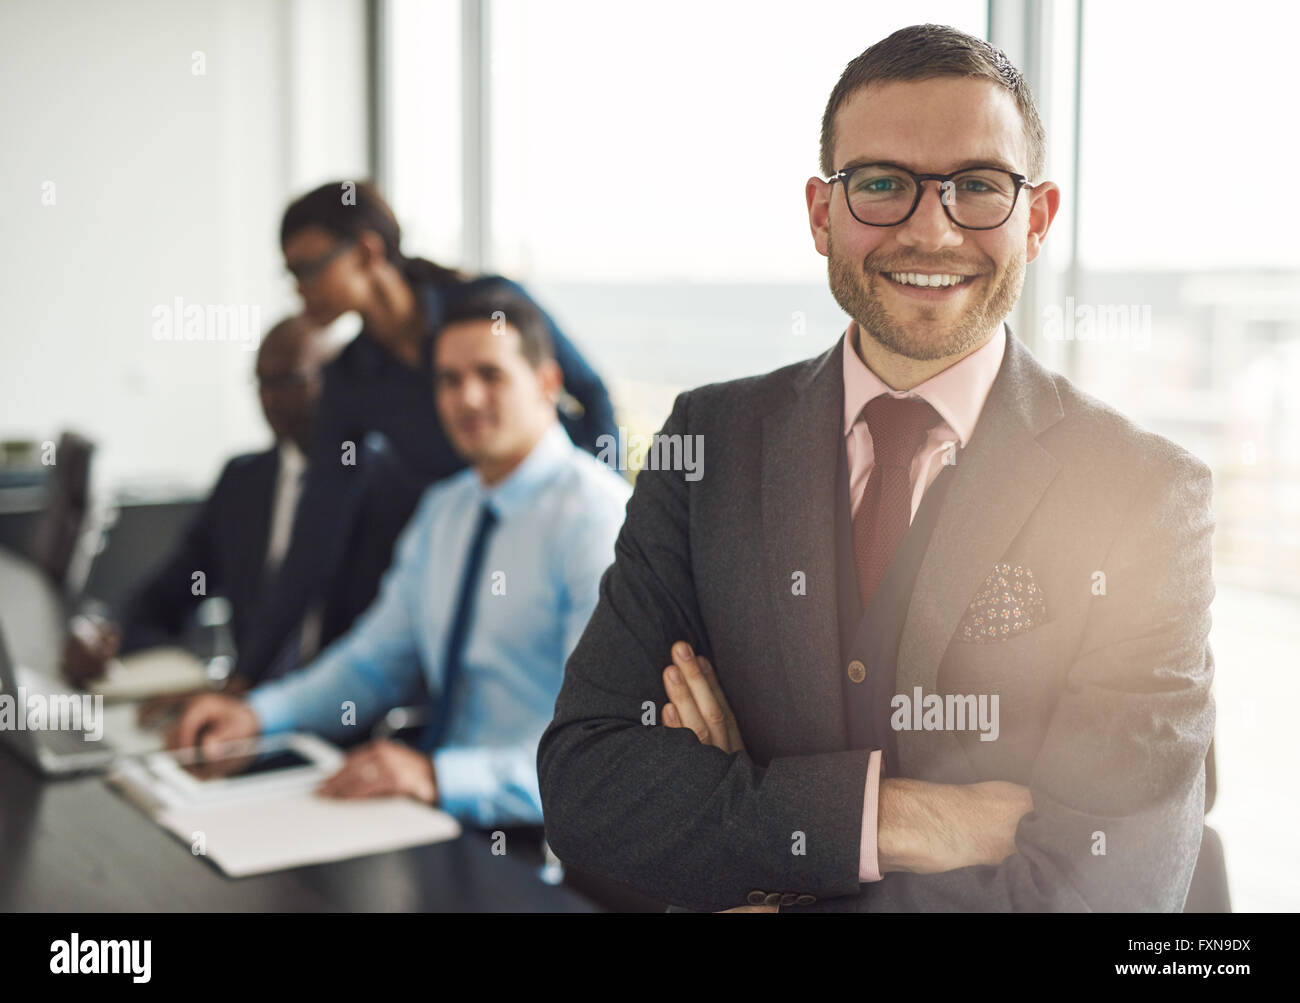 Confident smiling business executive with folded arms near conference table with three co-workers discussing something - Stock Image